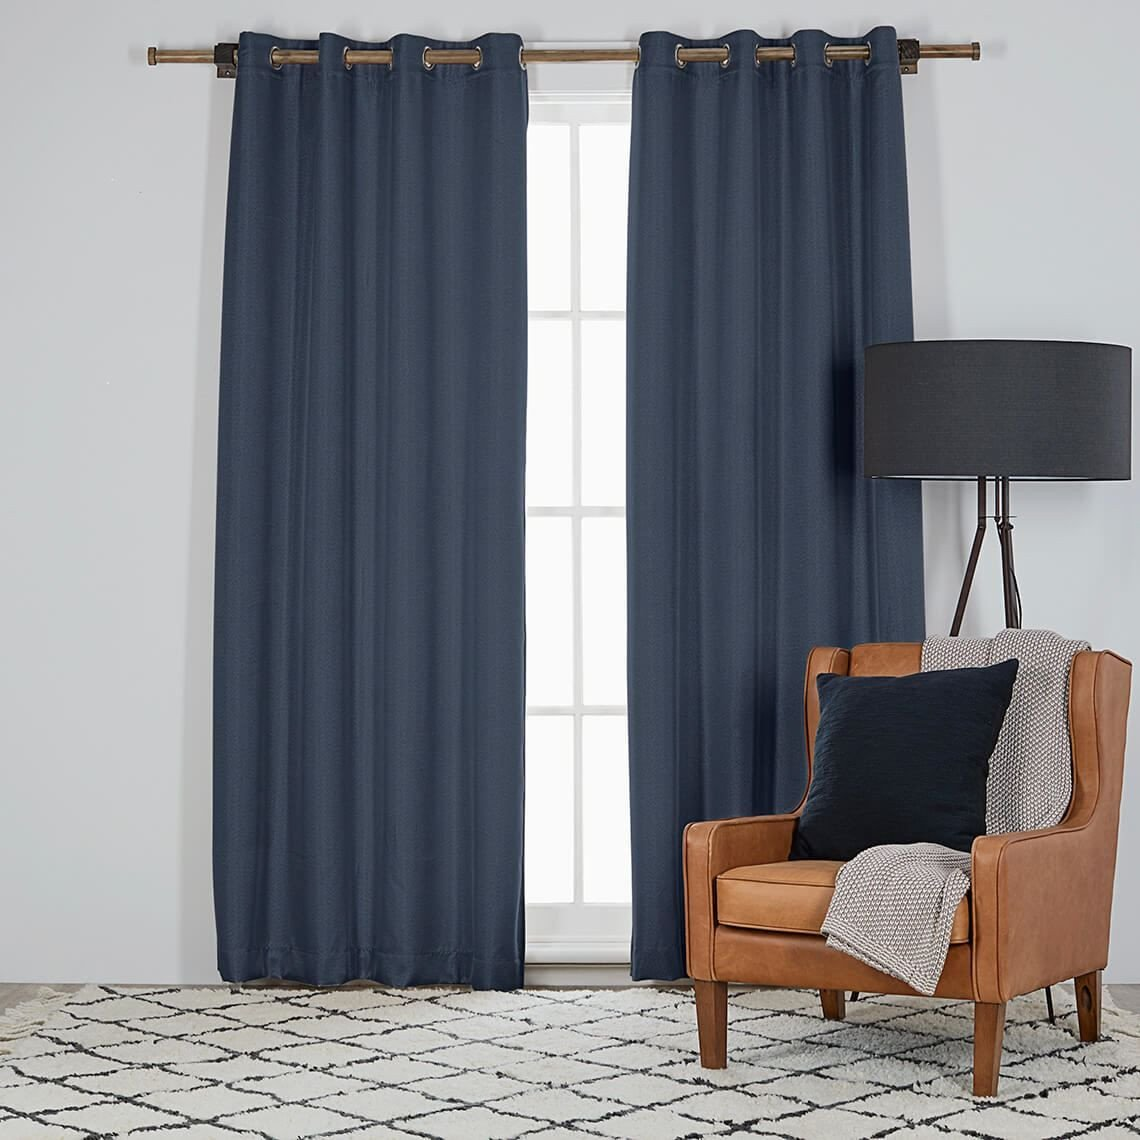 Navy Blue Curtains for Bedroom Lovely Harrison 135x230cm Room Darkening Eyelet Curtain Indigo